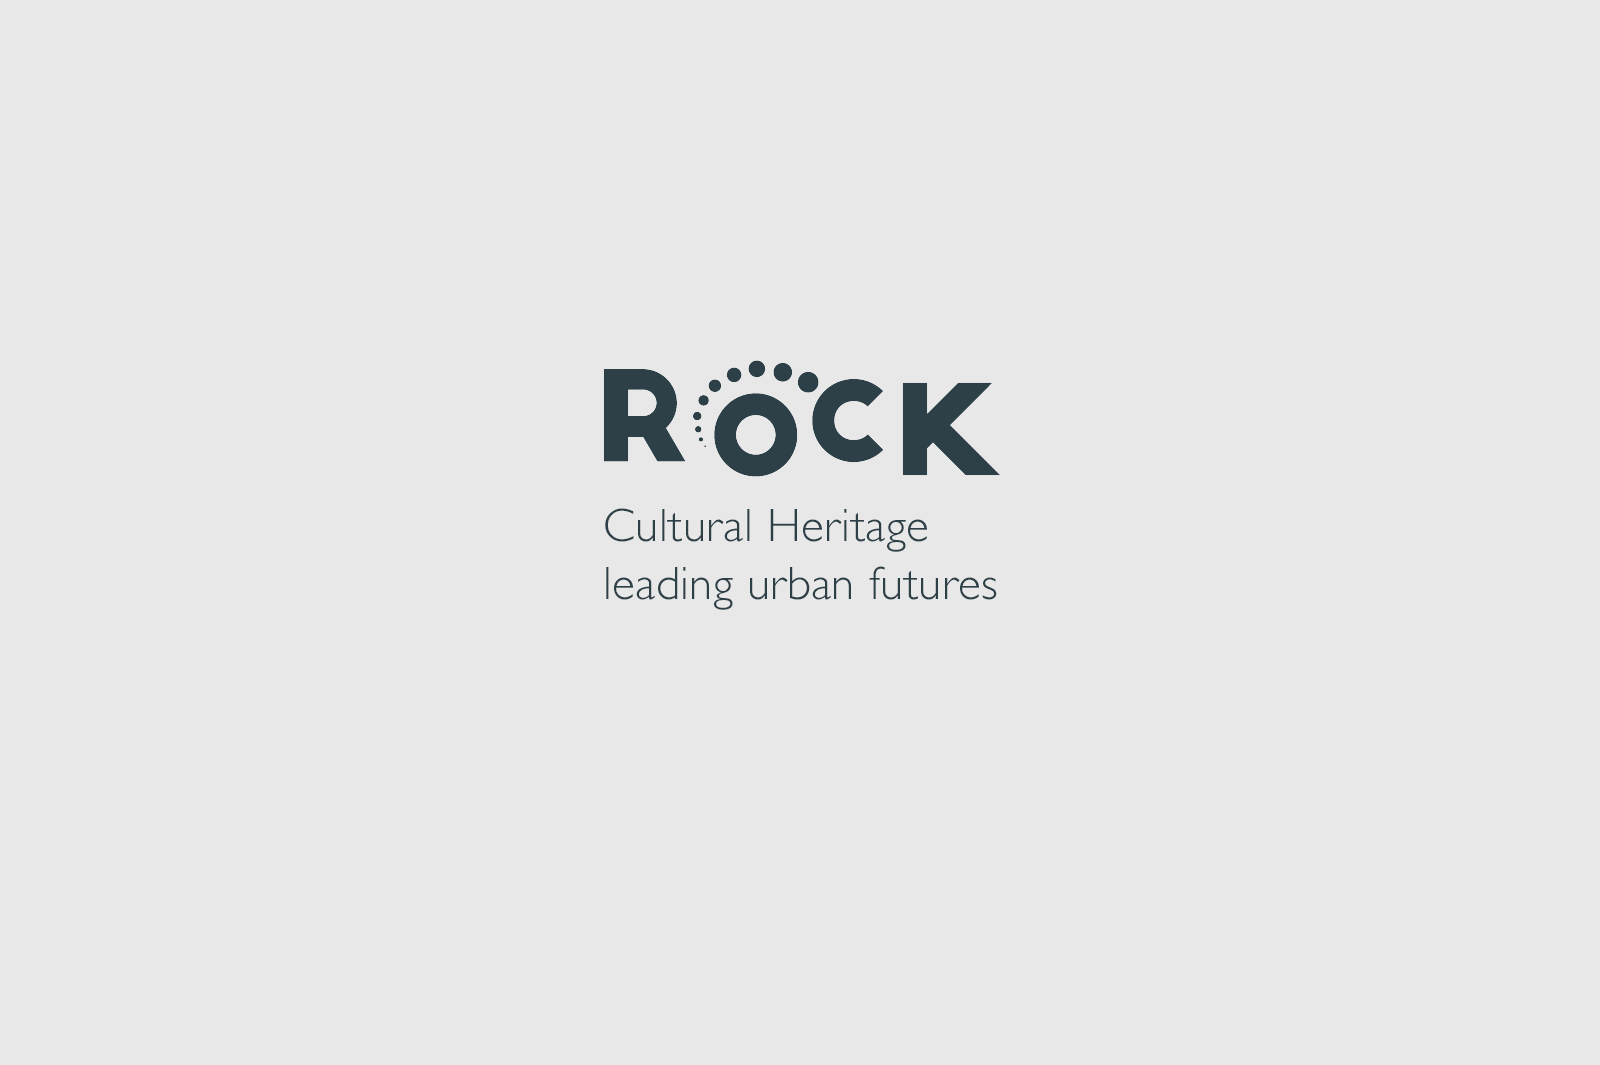 Rock Cultural Heritage leading urban futures logo